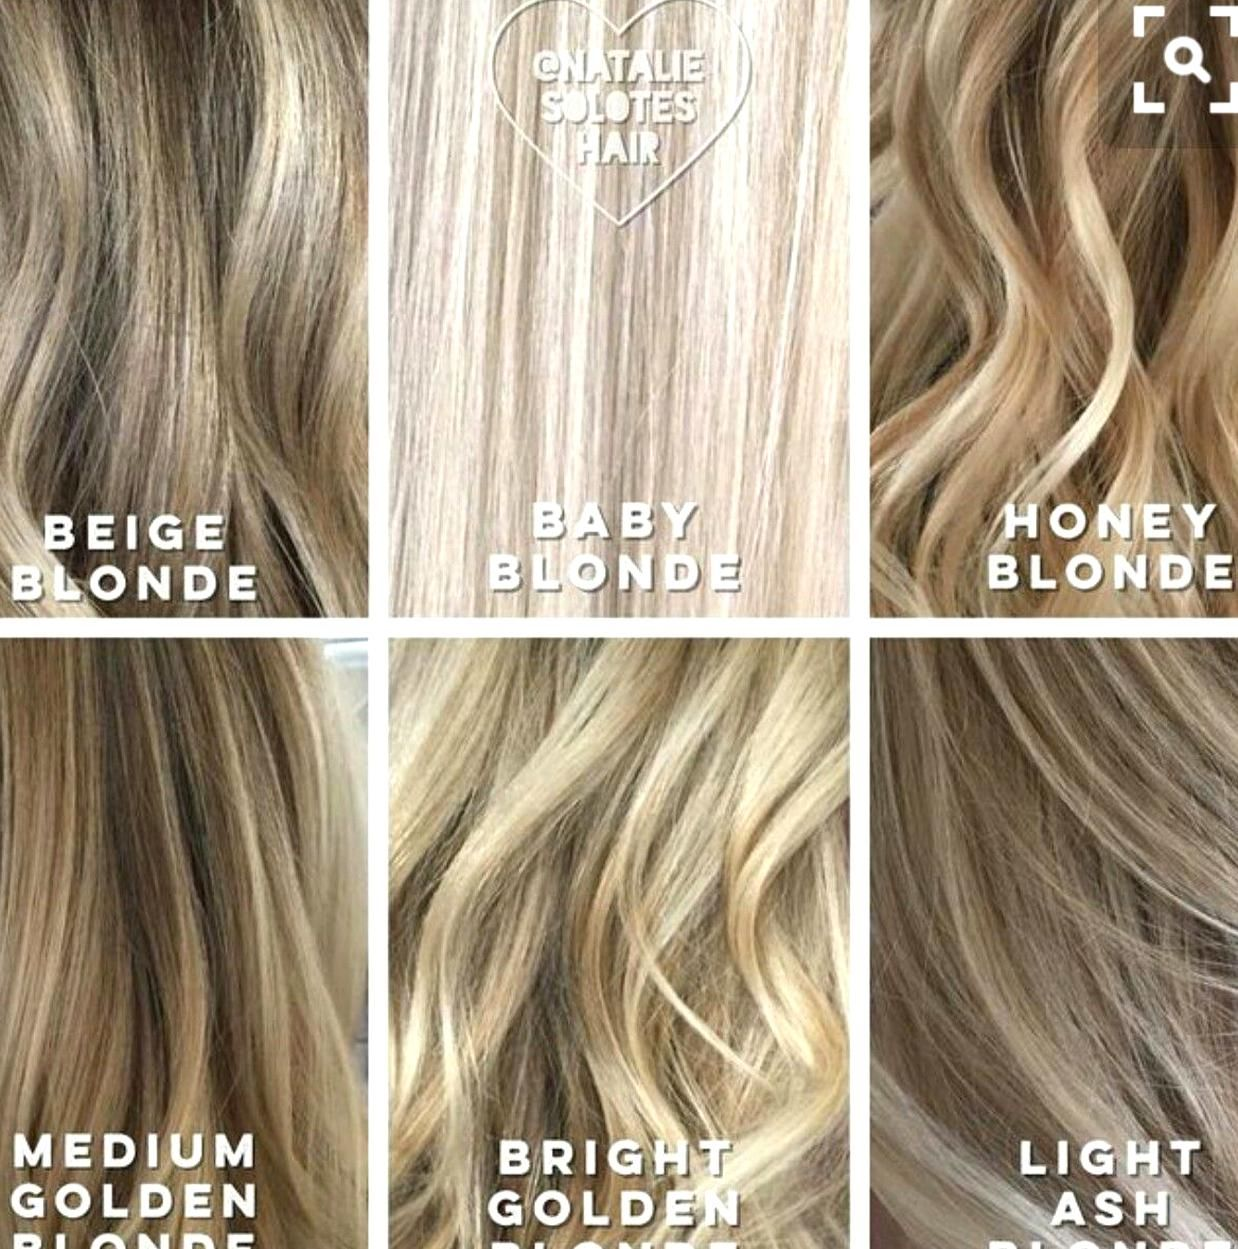 Shades Of Blonde Blonde Hair Color Chart Beige Blonde Hair Blonde Hair Color